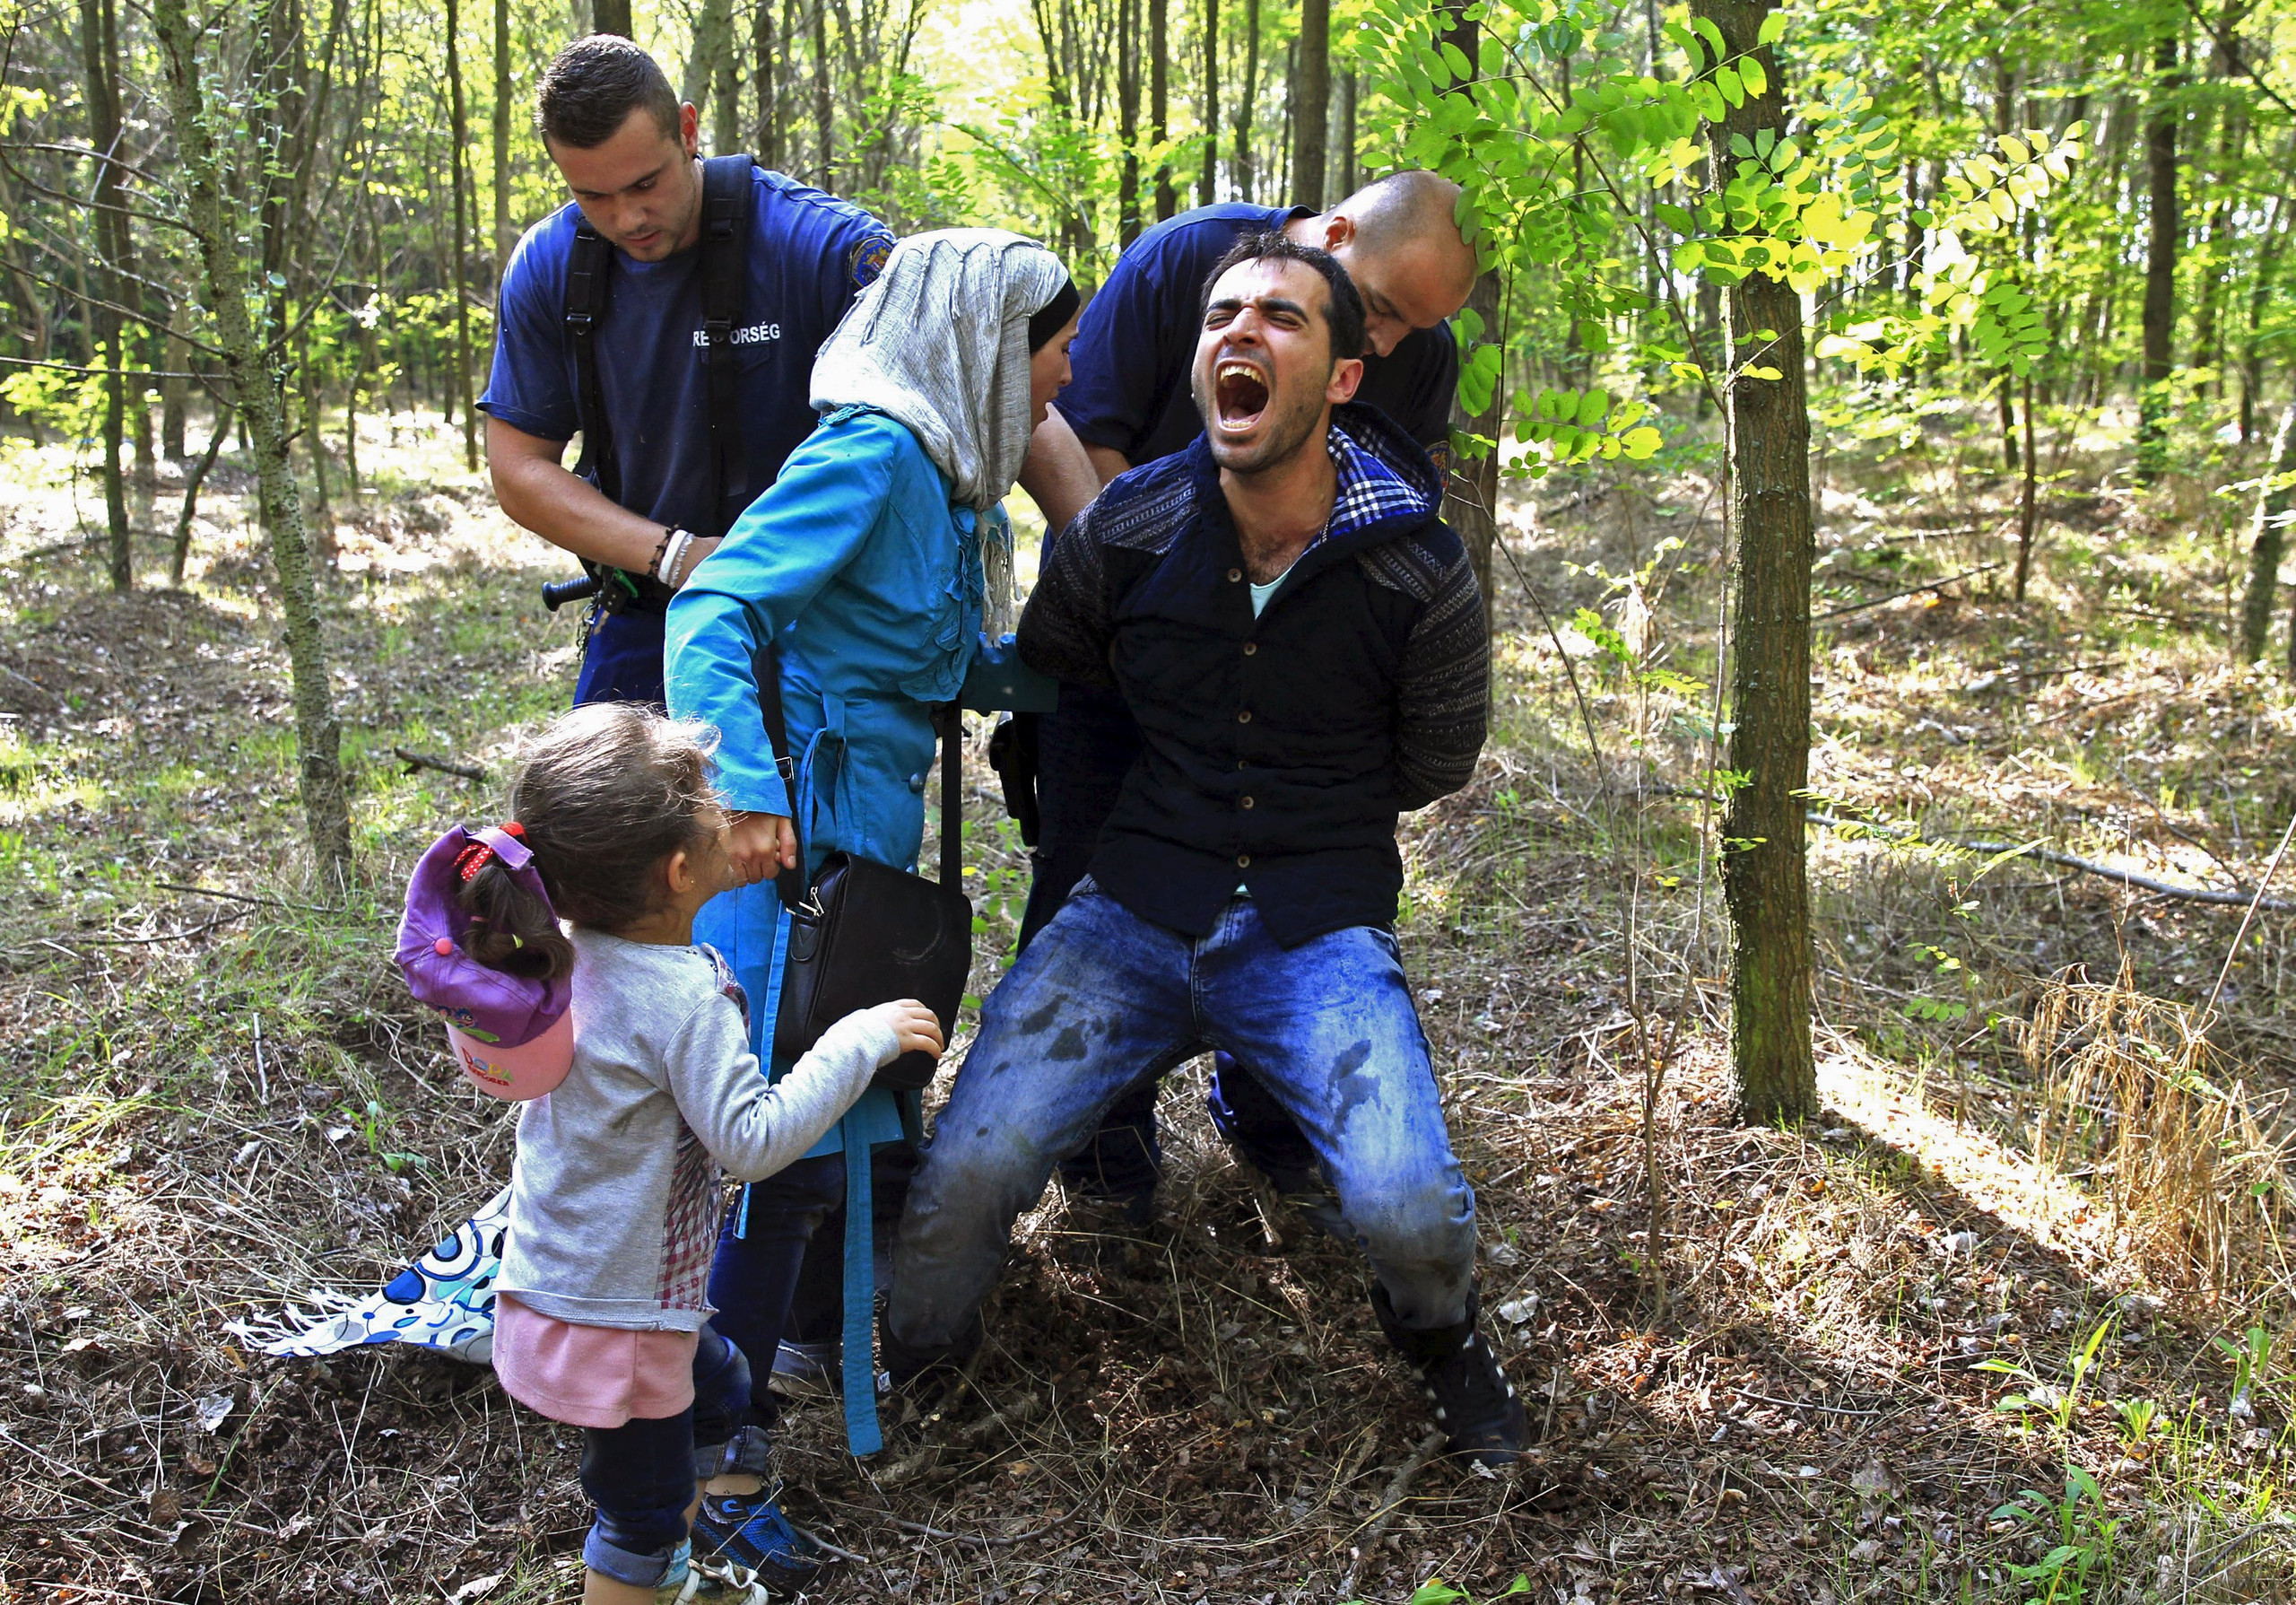 """Hungarian policemen detain a Syrian migrant family after they entered Hungary at the border with Serbia, near Roszke, August 28, 2015. REUTERS/Bernadett Szabo          SEARCH """"YEAREND 2015: MIGRANT CRISIS"""" FOR ALL 55 PICTURES"""